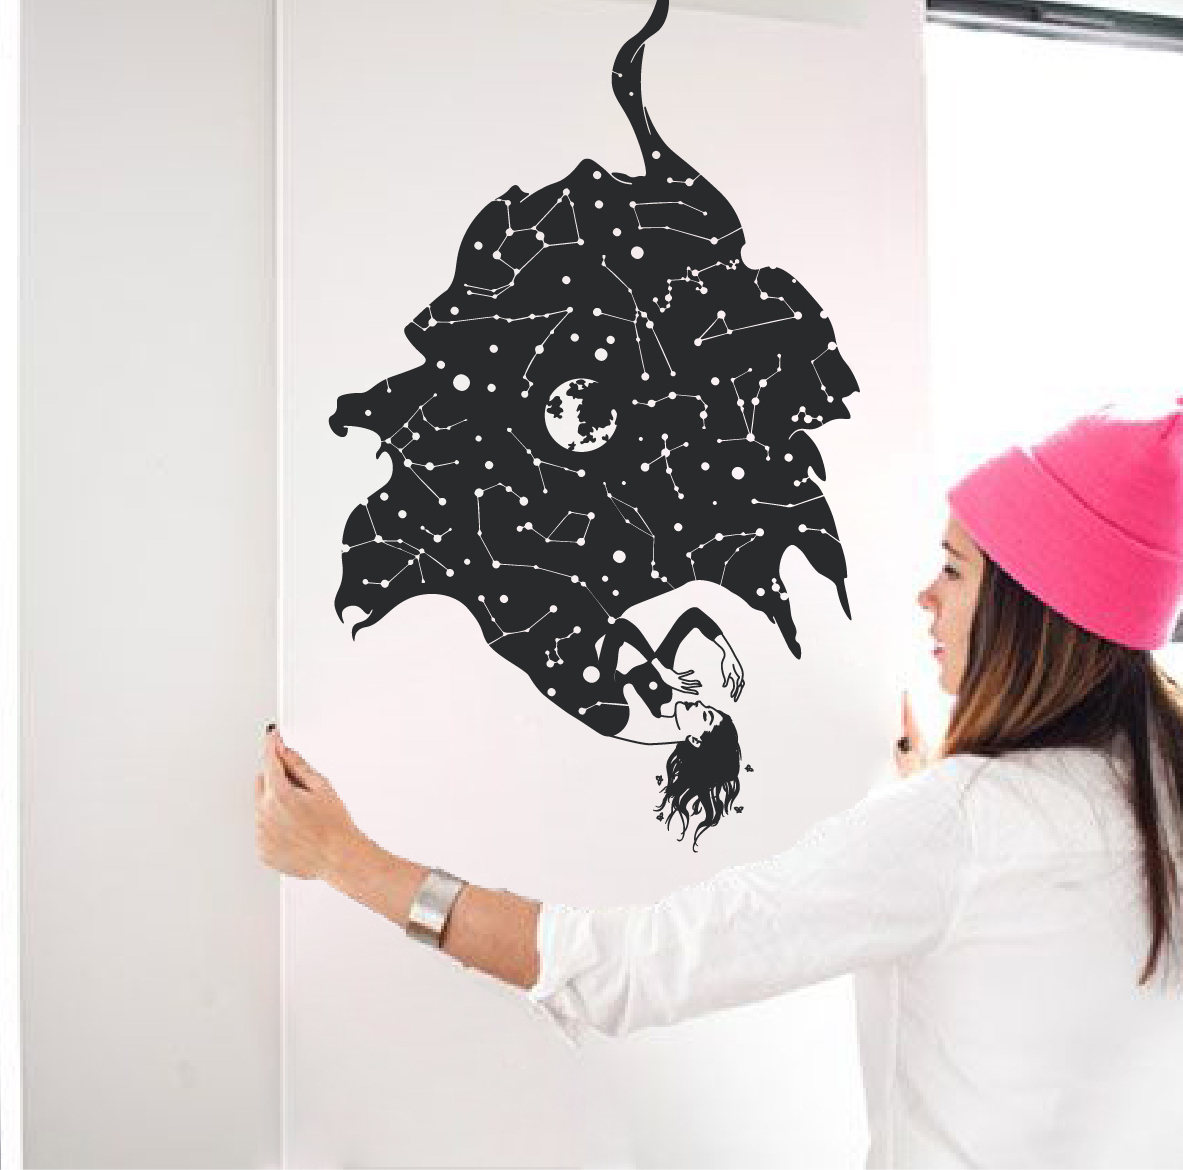 What To Do When Wall Stickers Wont Stick The Decal Guru - How to make vinyl decals stick better